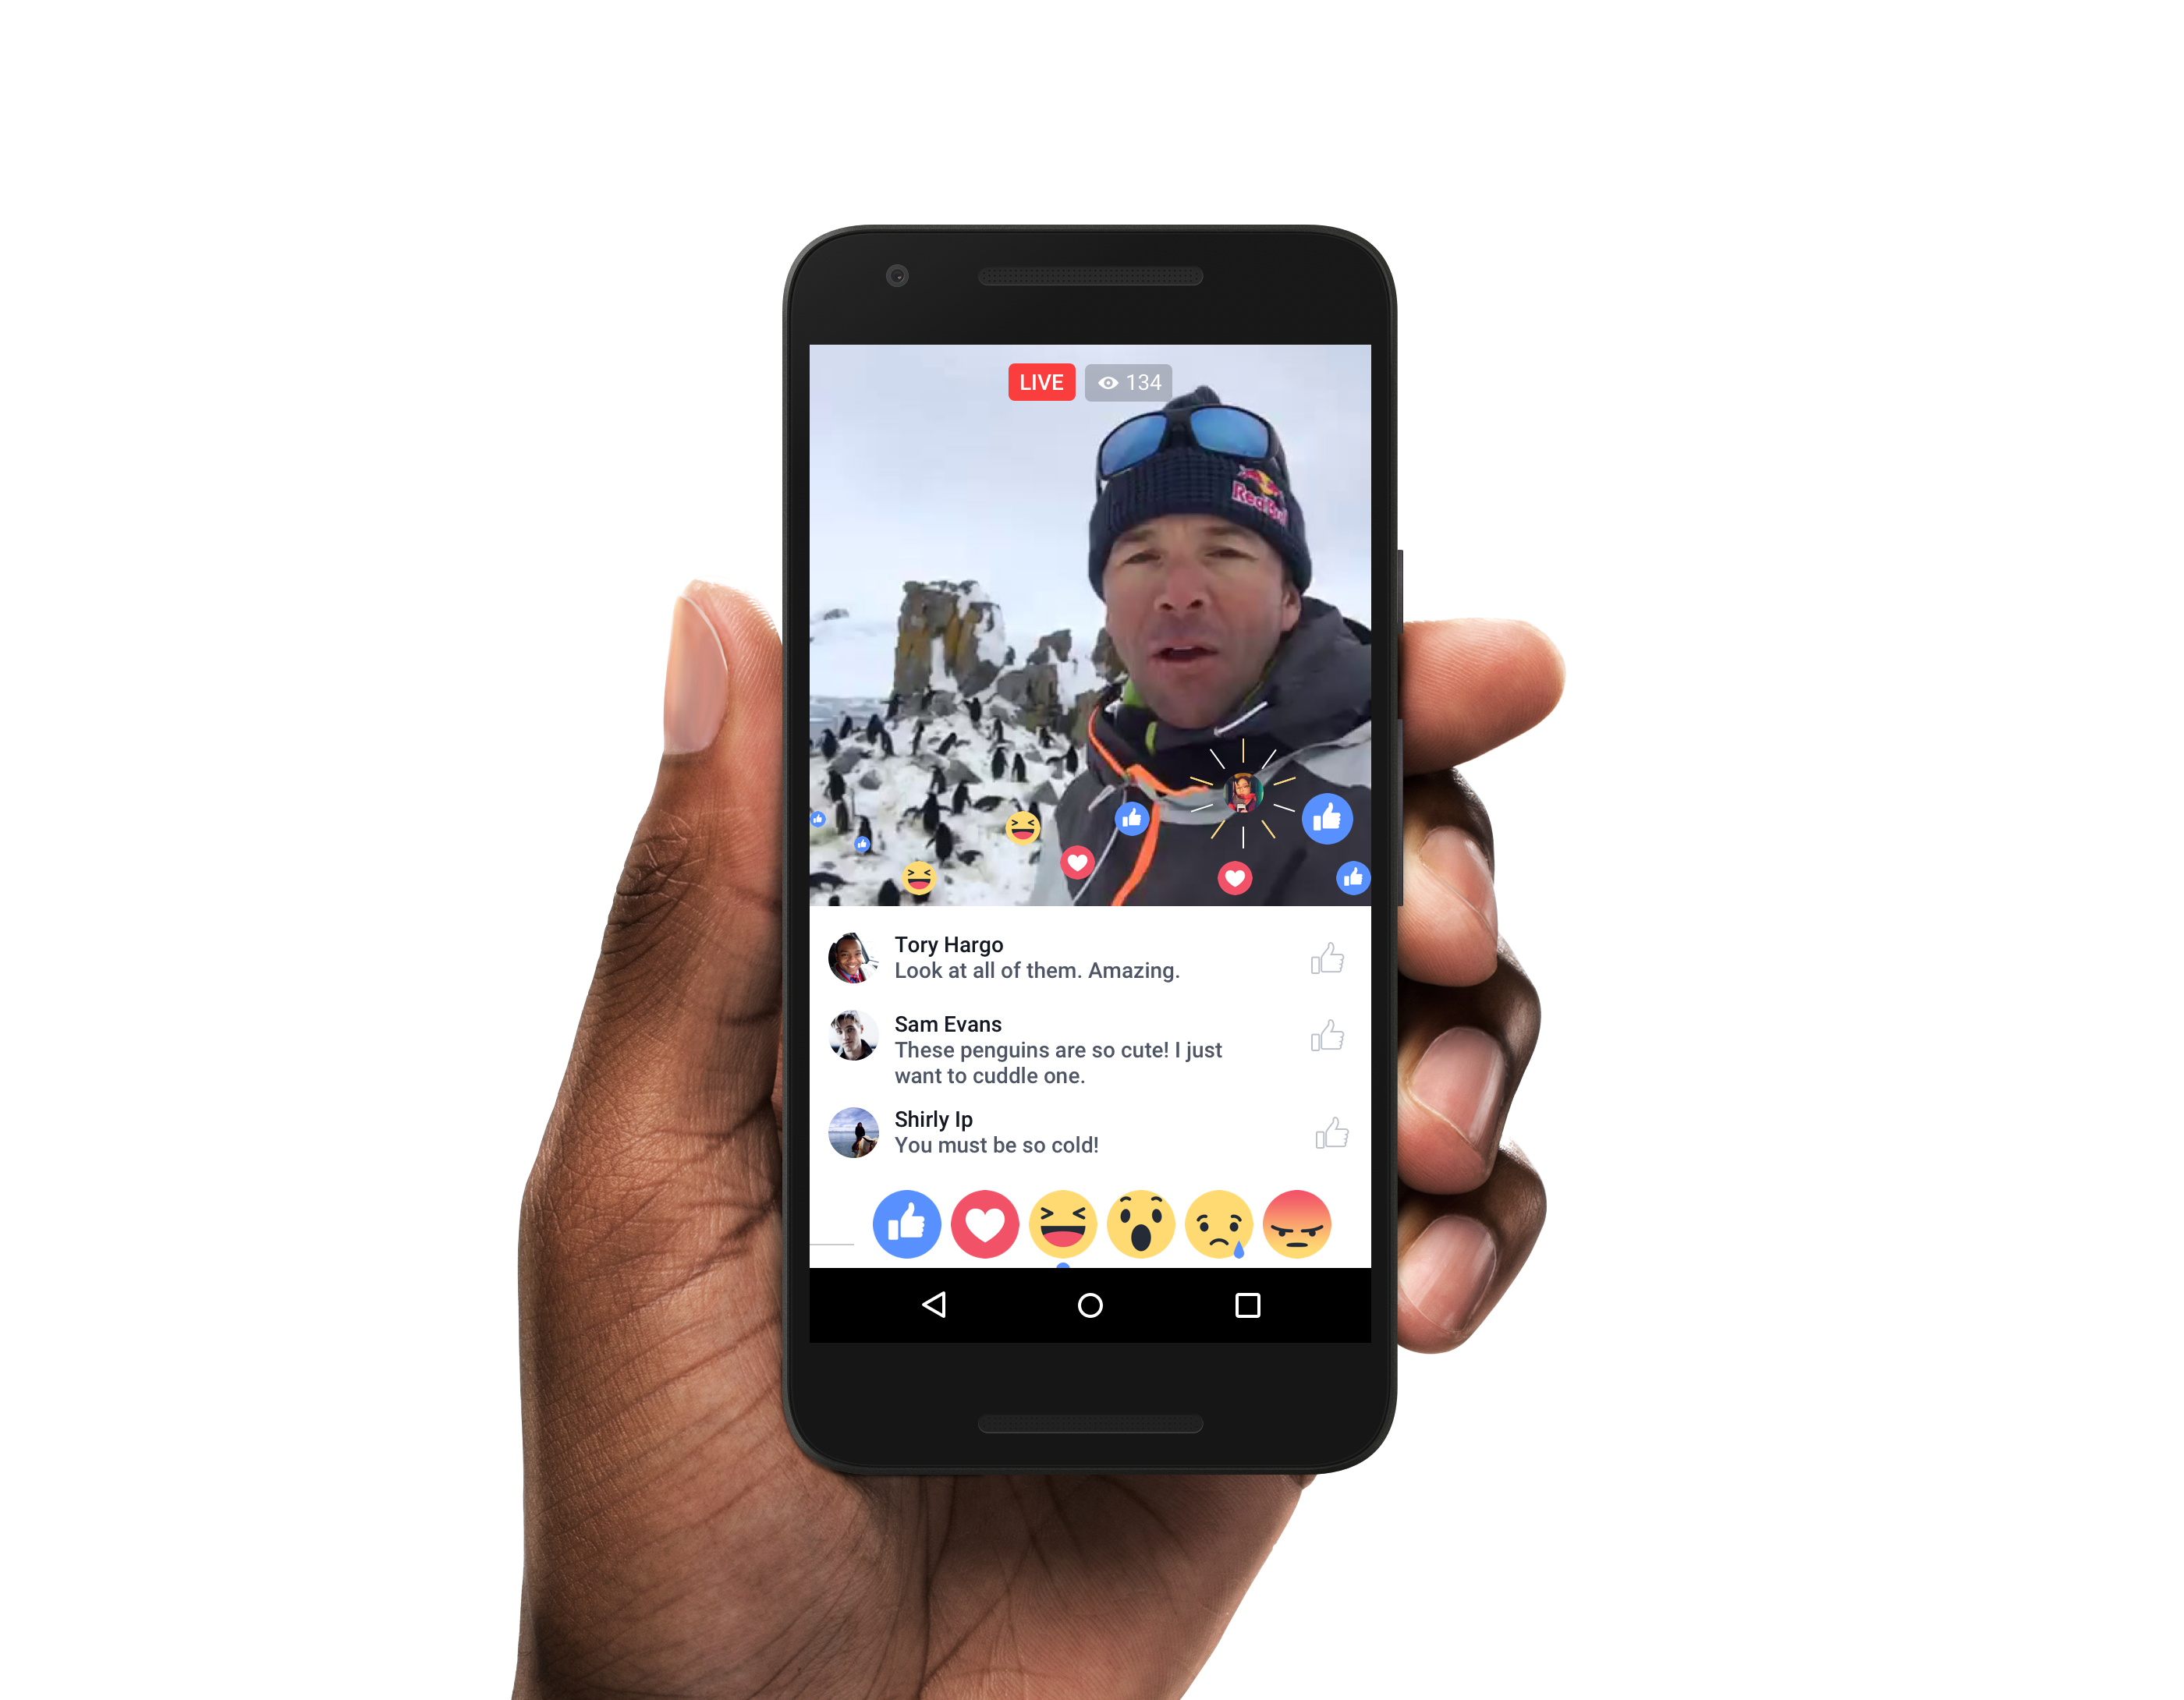 Facebook's Live Reactions in action.